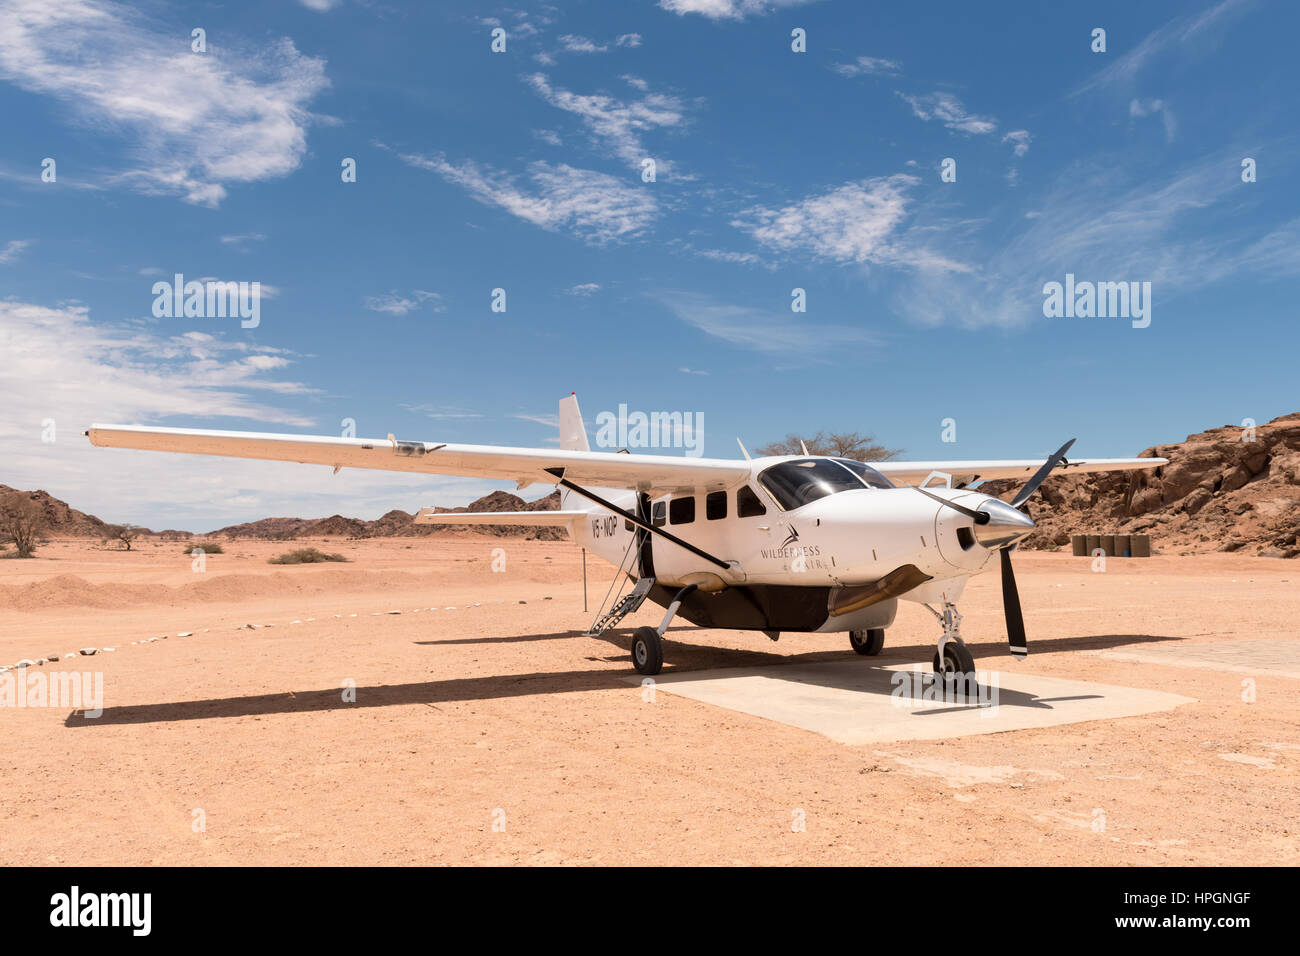 A Cessna 208 parked on the airstrip serving the Wilderness Safaris Hoanib Skeleton Coast Camp. - Stock Image